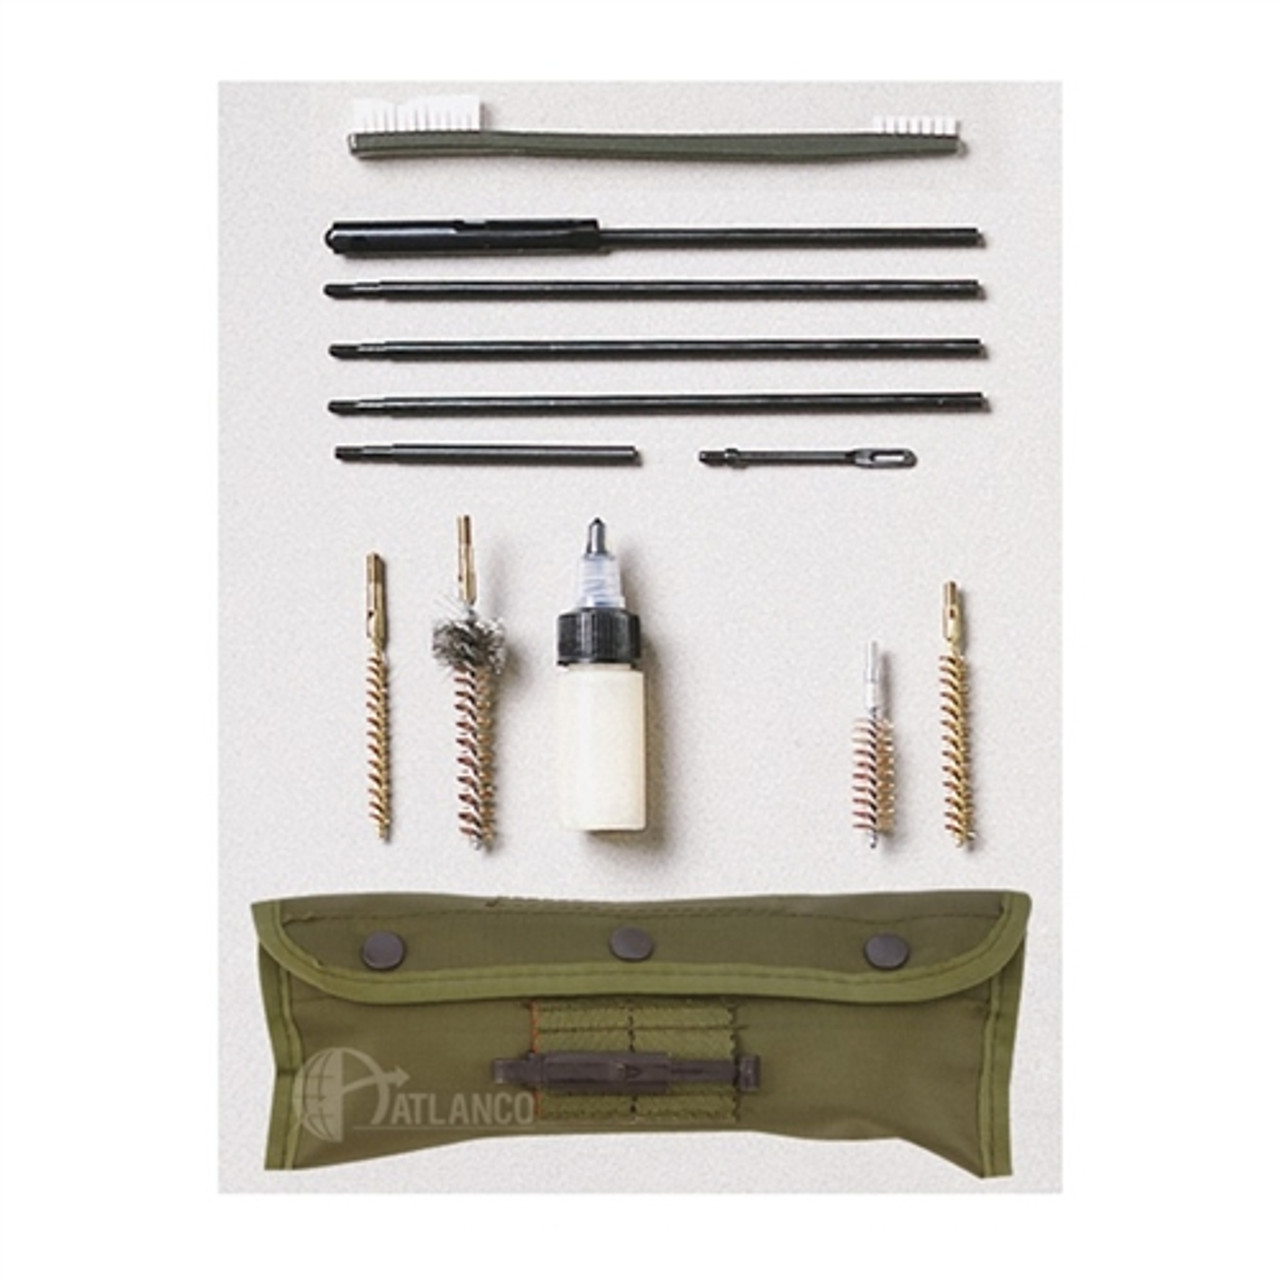 5S Universal Cleaning Kit from Hessen Antique